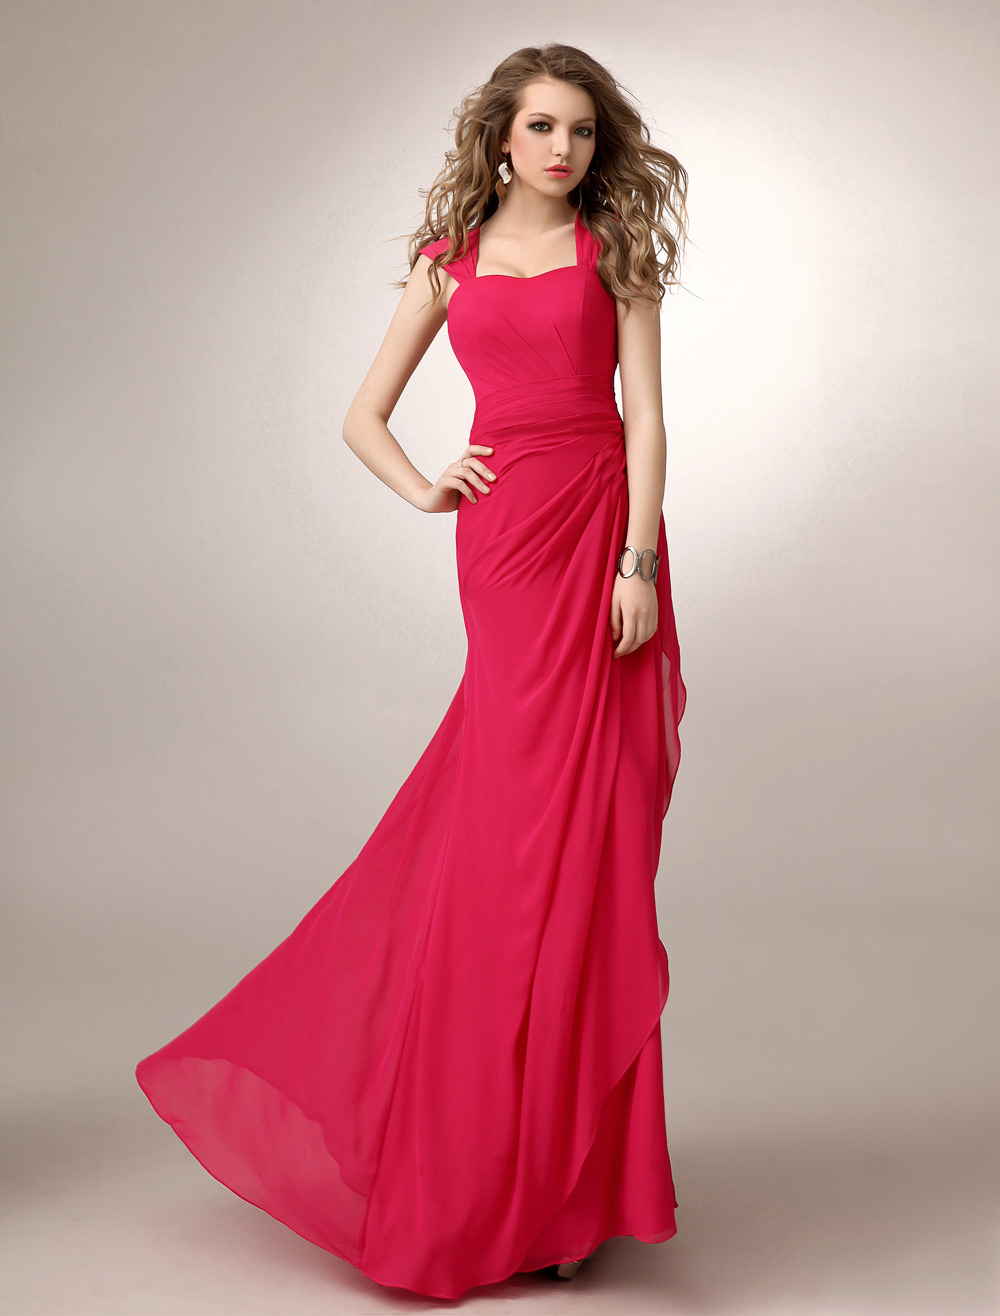 Buy Coral Chiffon Bridesmaid Dress Straps Ruched A Line Sweetheart Neck Floor-Length Wedding Party Dress for $116.44 in Milanoo store